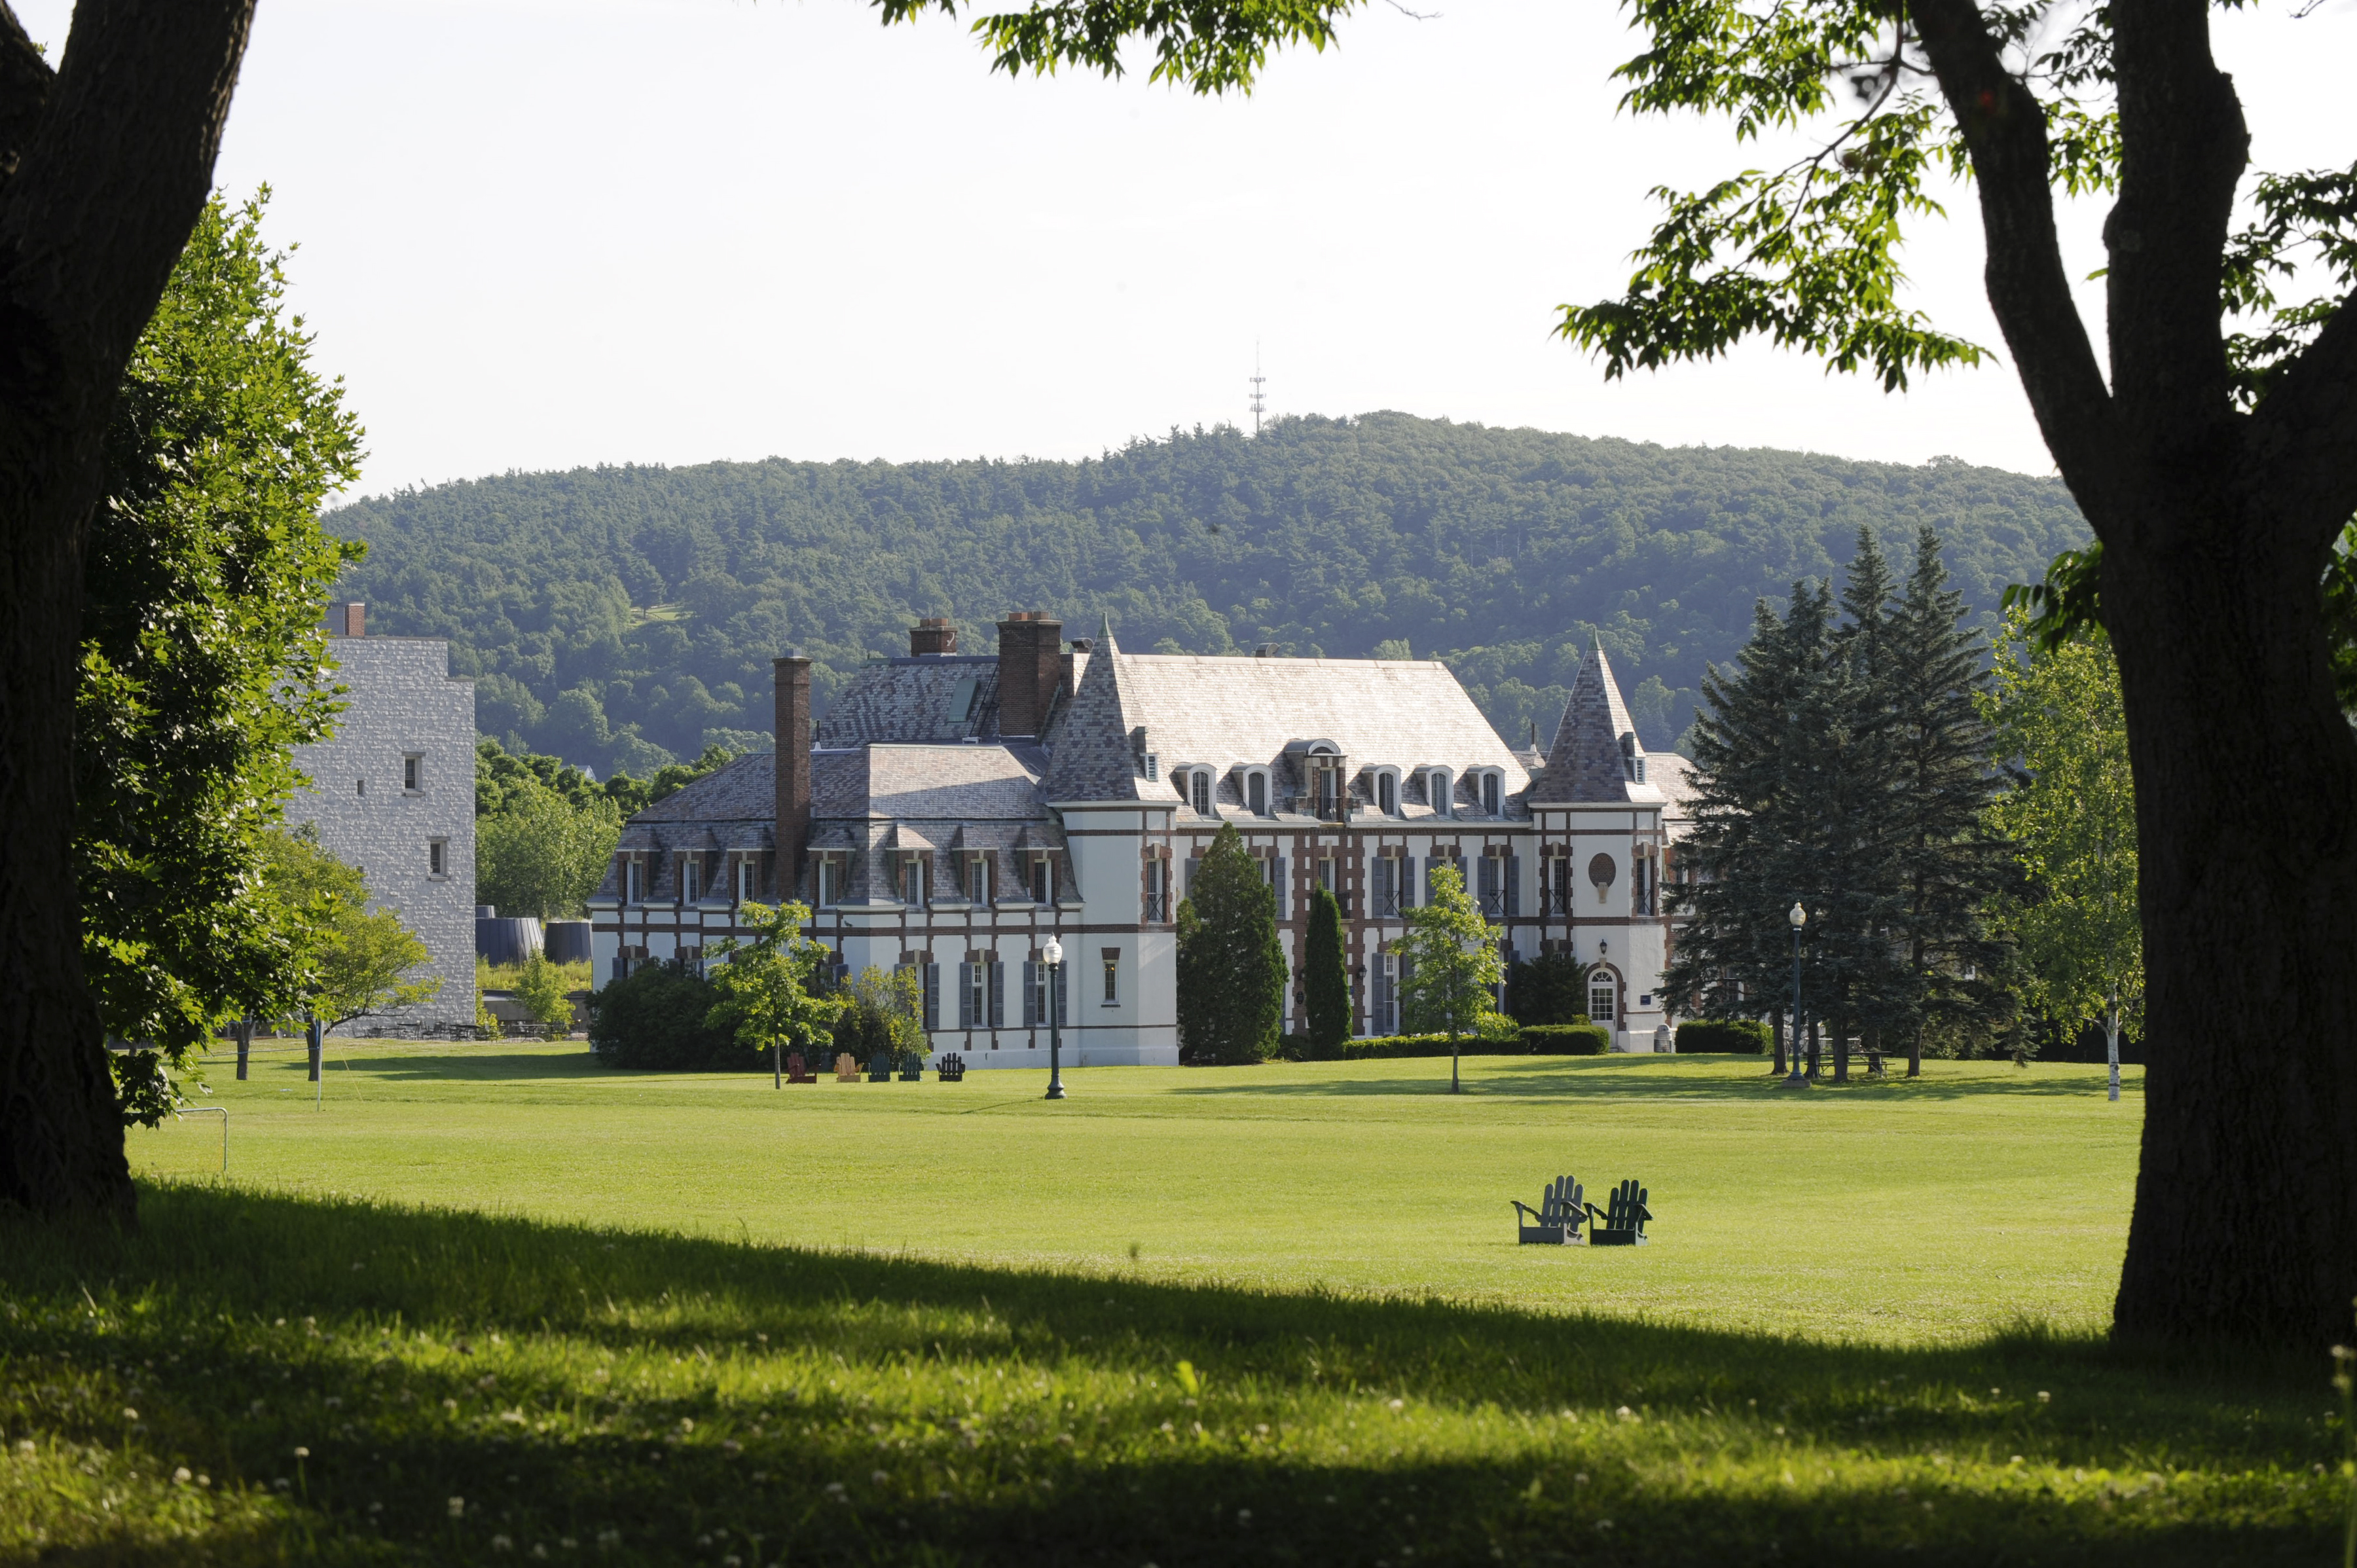 MIDDLEBURY COLLEGE CAMPUS – MIDDLEBURY, VERMONT